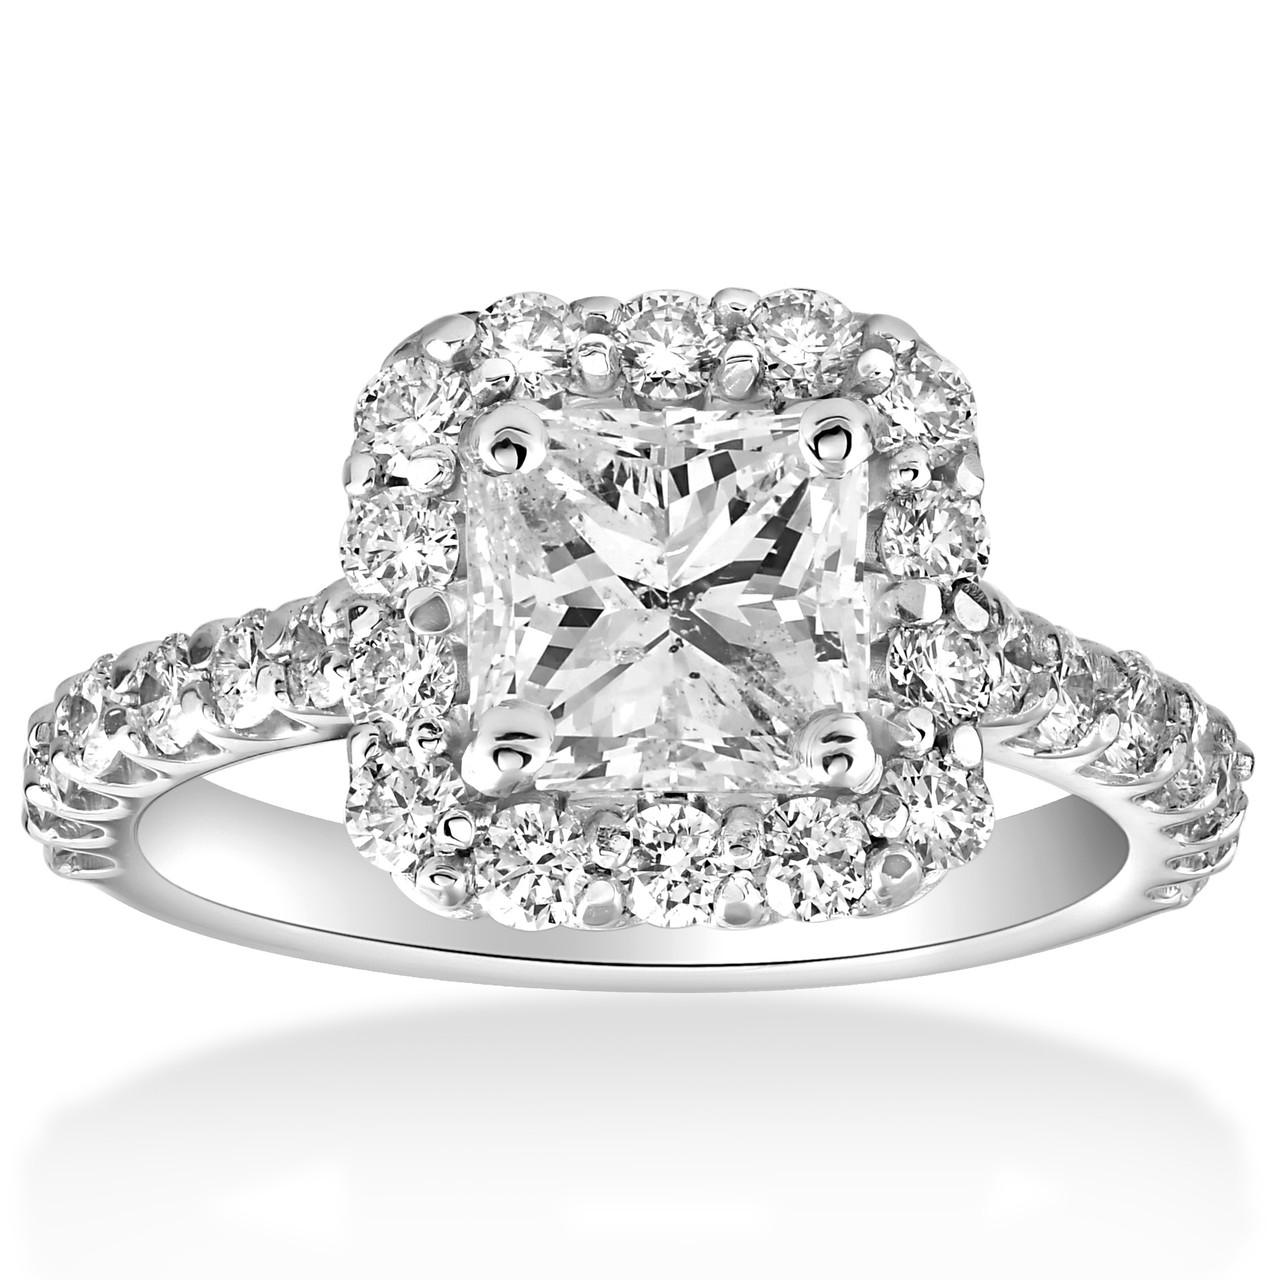 trilogy square jewellery rings bridal ring wedding diamond cut lugaro crl ideal engagement